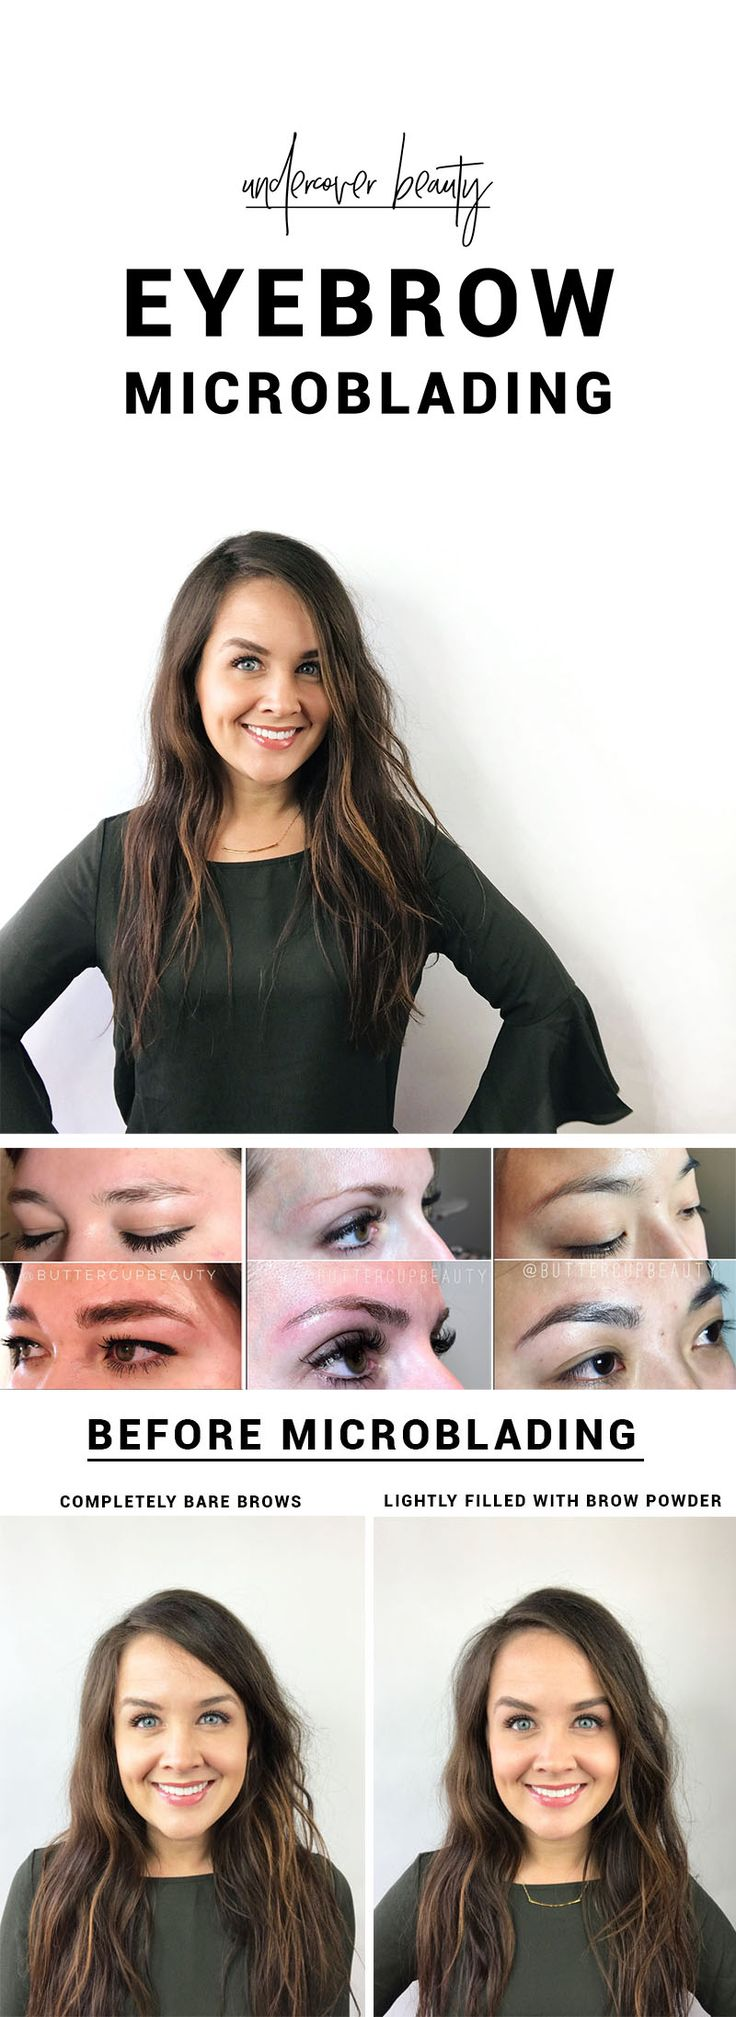 Have you heard of eyebrow microblading? It creates tiny, hair-like, 3D strokes onto your skin to help brows appear thicker and give them shape.